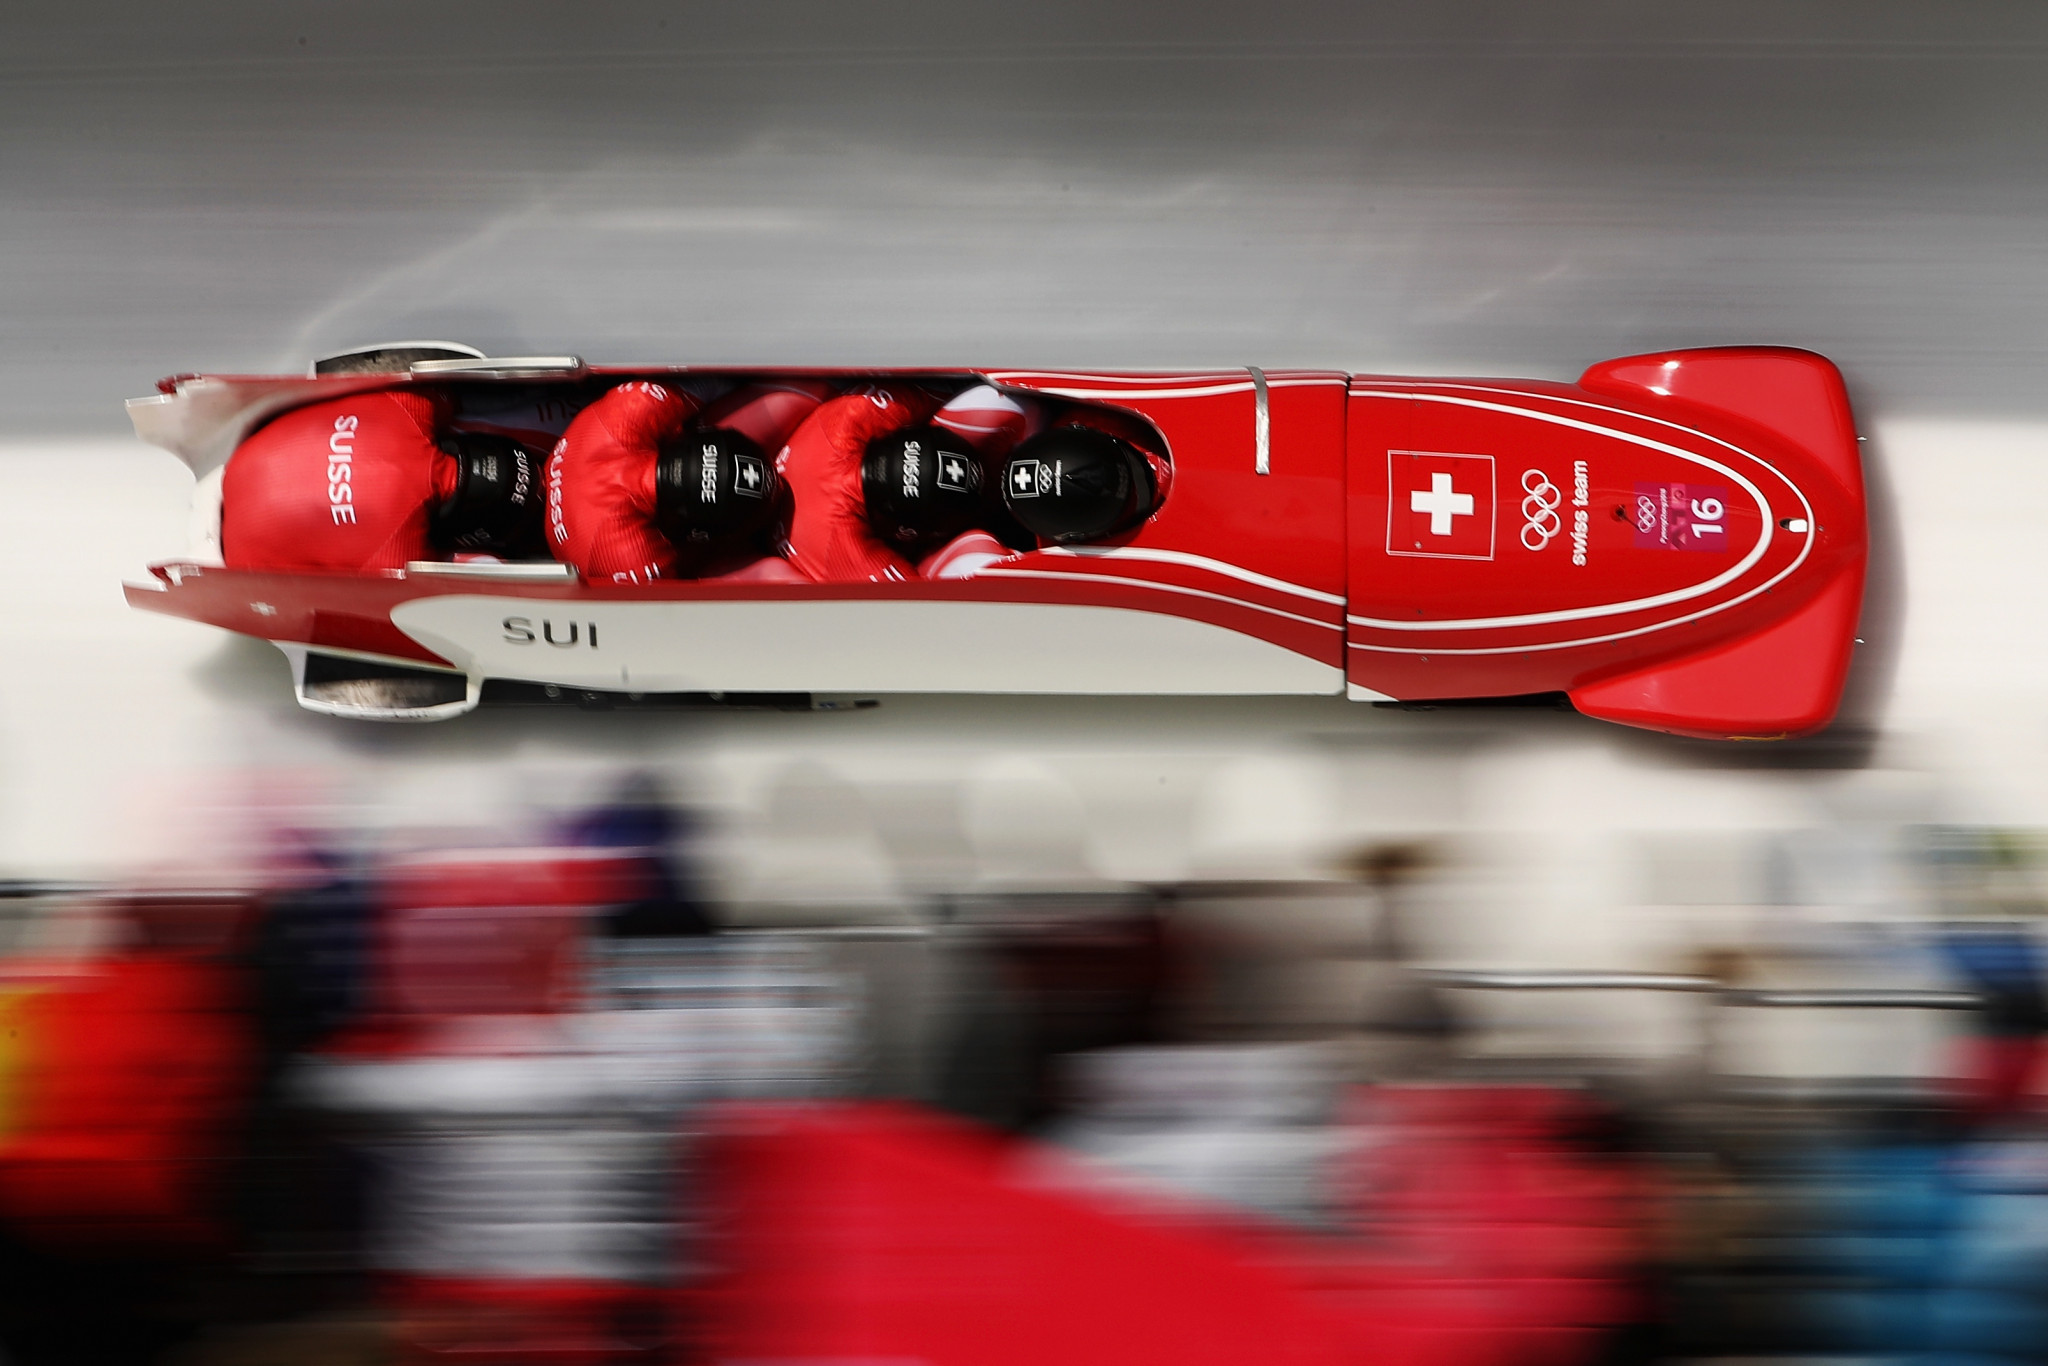 Petr Ramseidl named new coach of Switzerland bobsleigh team